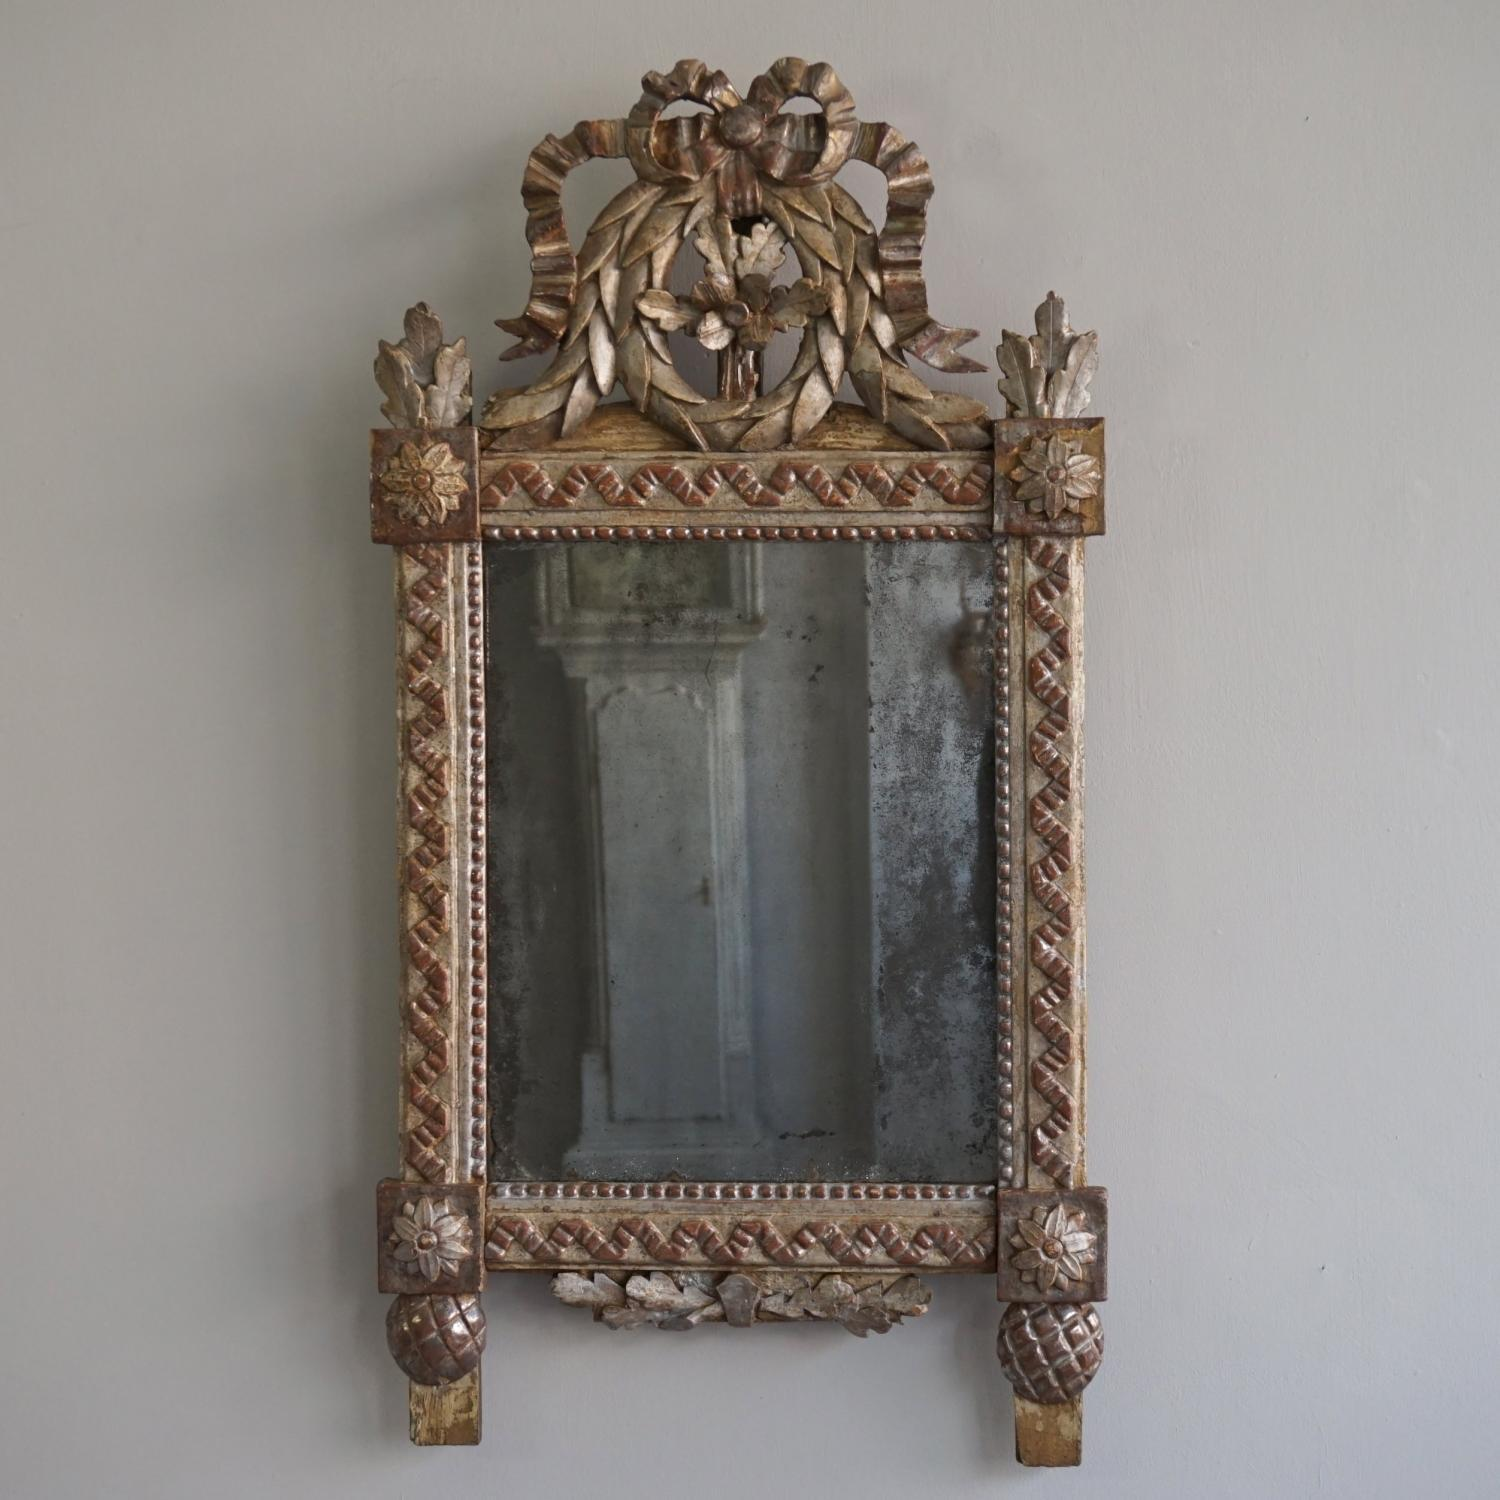 EQUISITE 18TH CENTURY FRENCH LOUIS XVI MIRROR